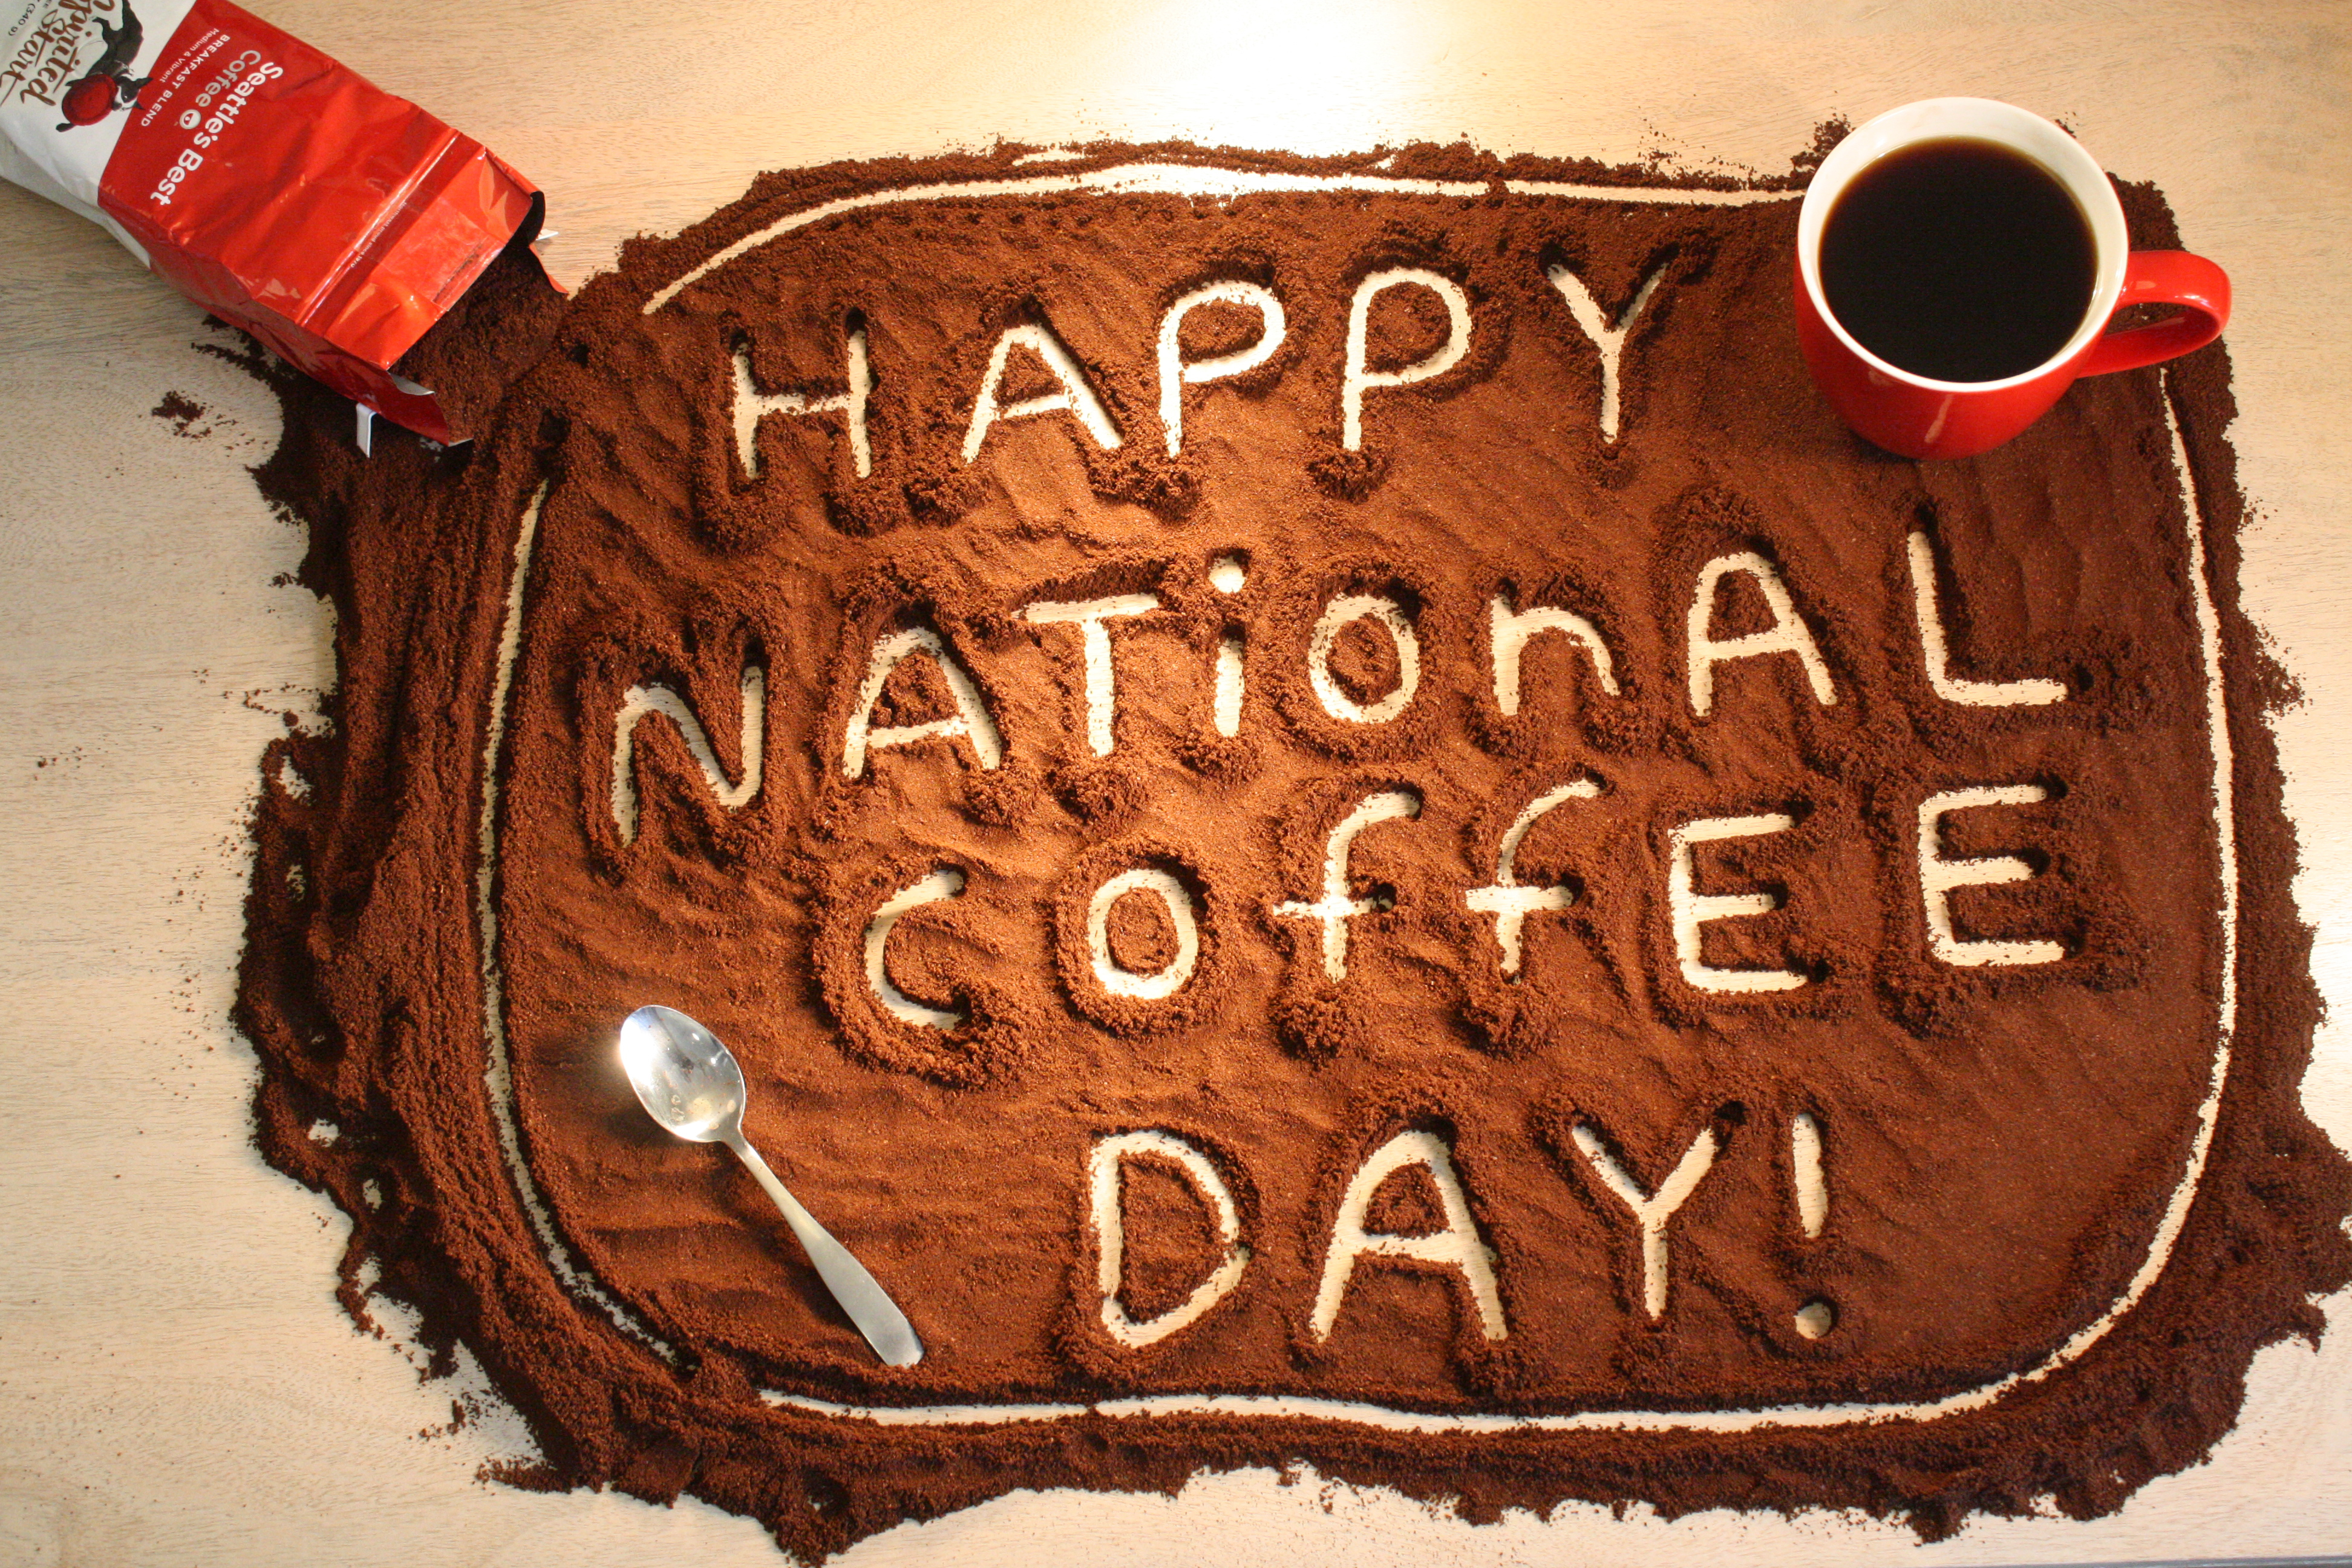 International Coffee Day is an occasion that is used to promote and celebrate coffee as a beverage with events now occurring in places across the world